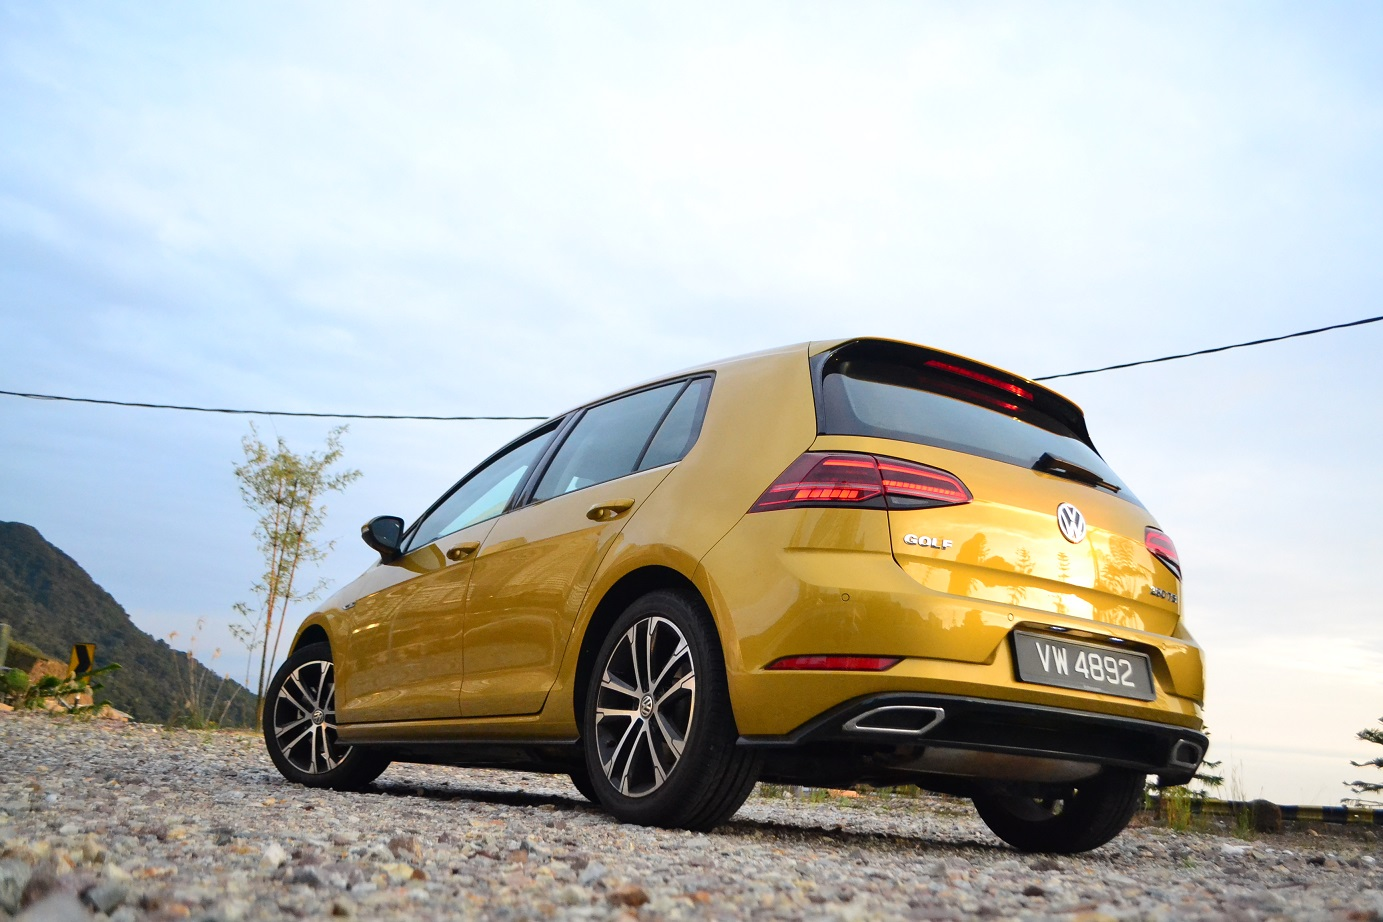 The Golf 1 4 TSI R-line - A perspective from a Golf Mk6